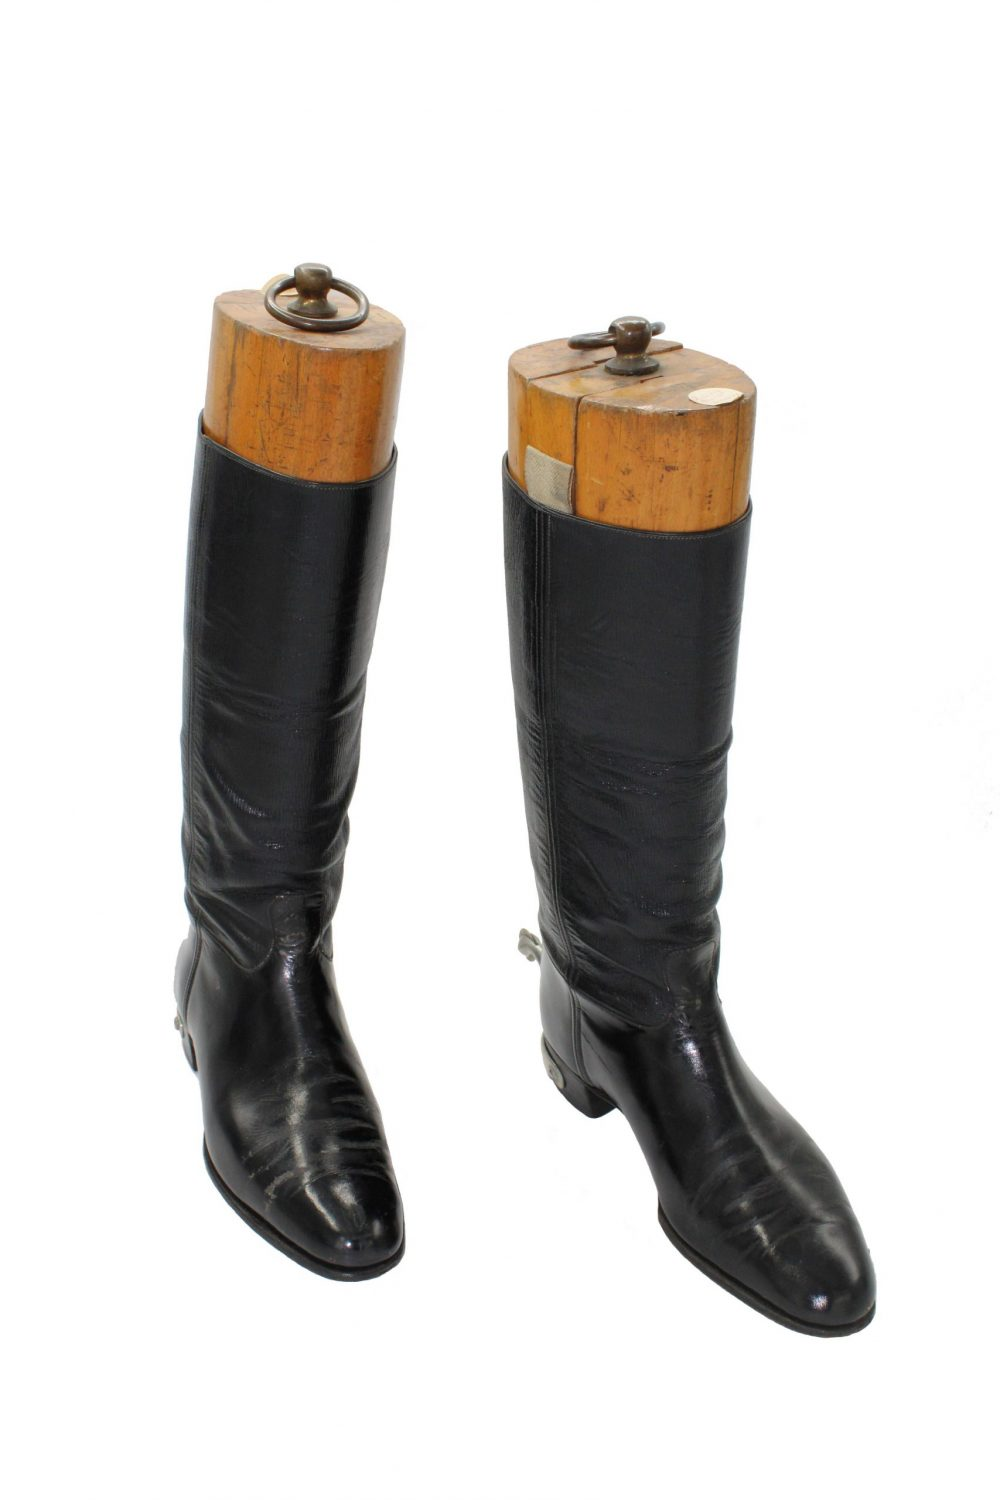 Black leather boots with a small block heel, which finish at mid calf